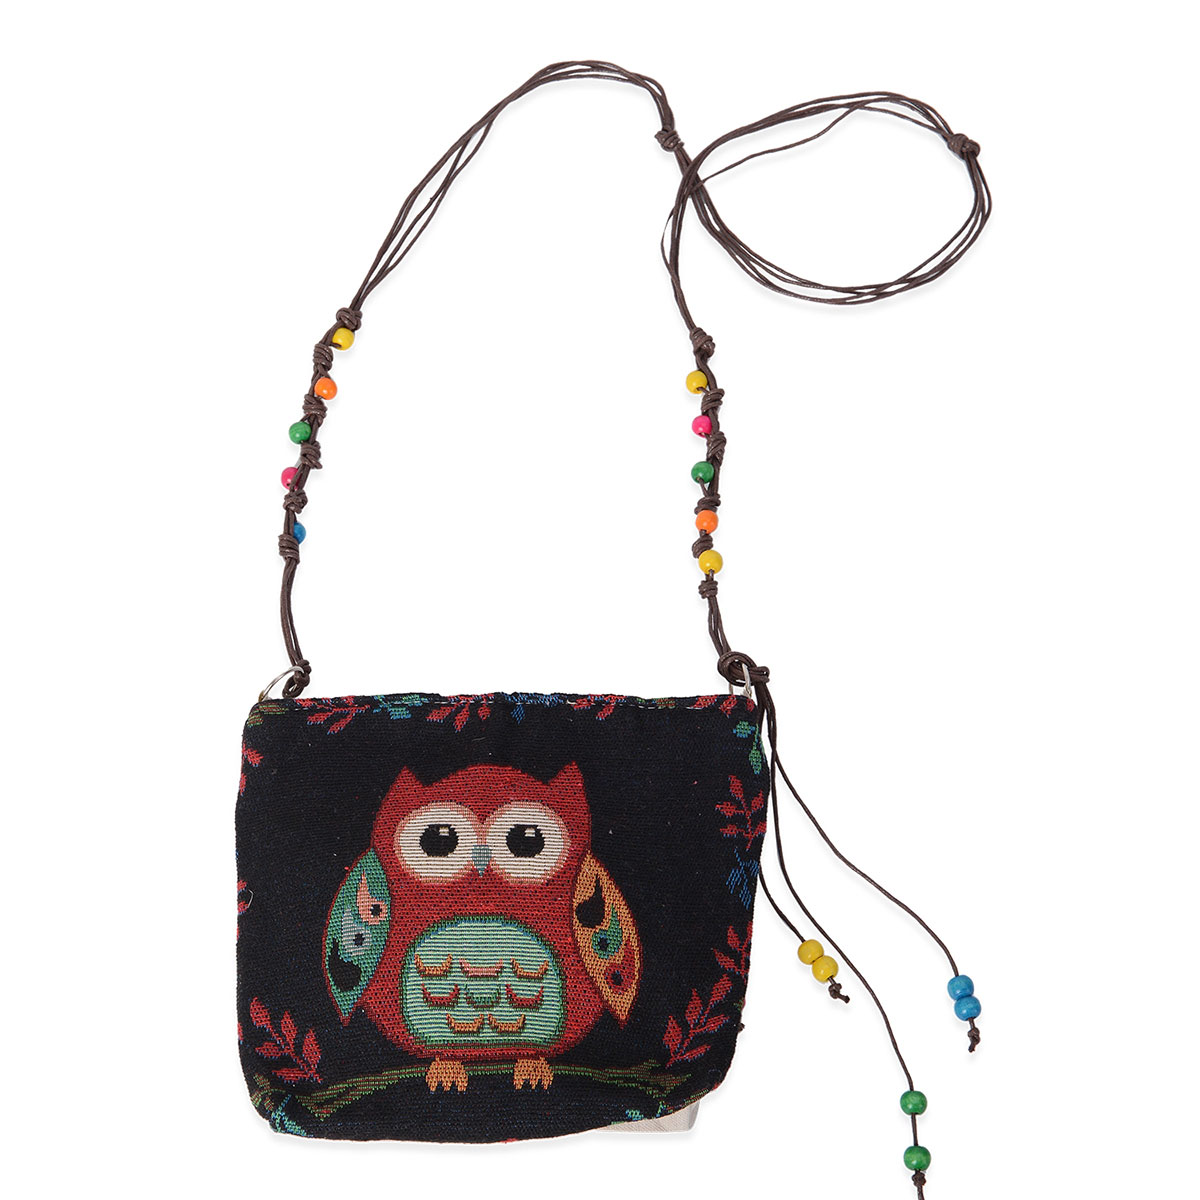 Black With Multi Color Owl And Flower Pattern Jute Crossbody Bag 8x2 3x7 In Shoulder Strap 46